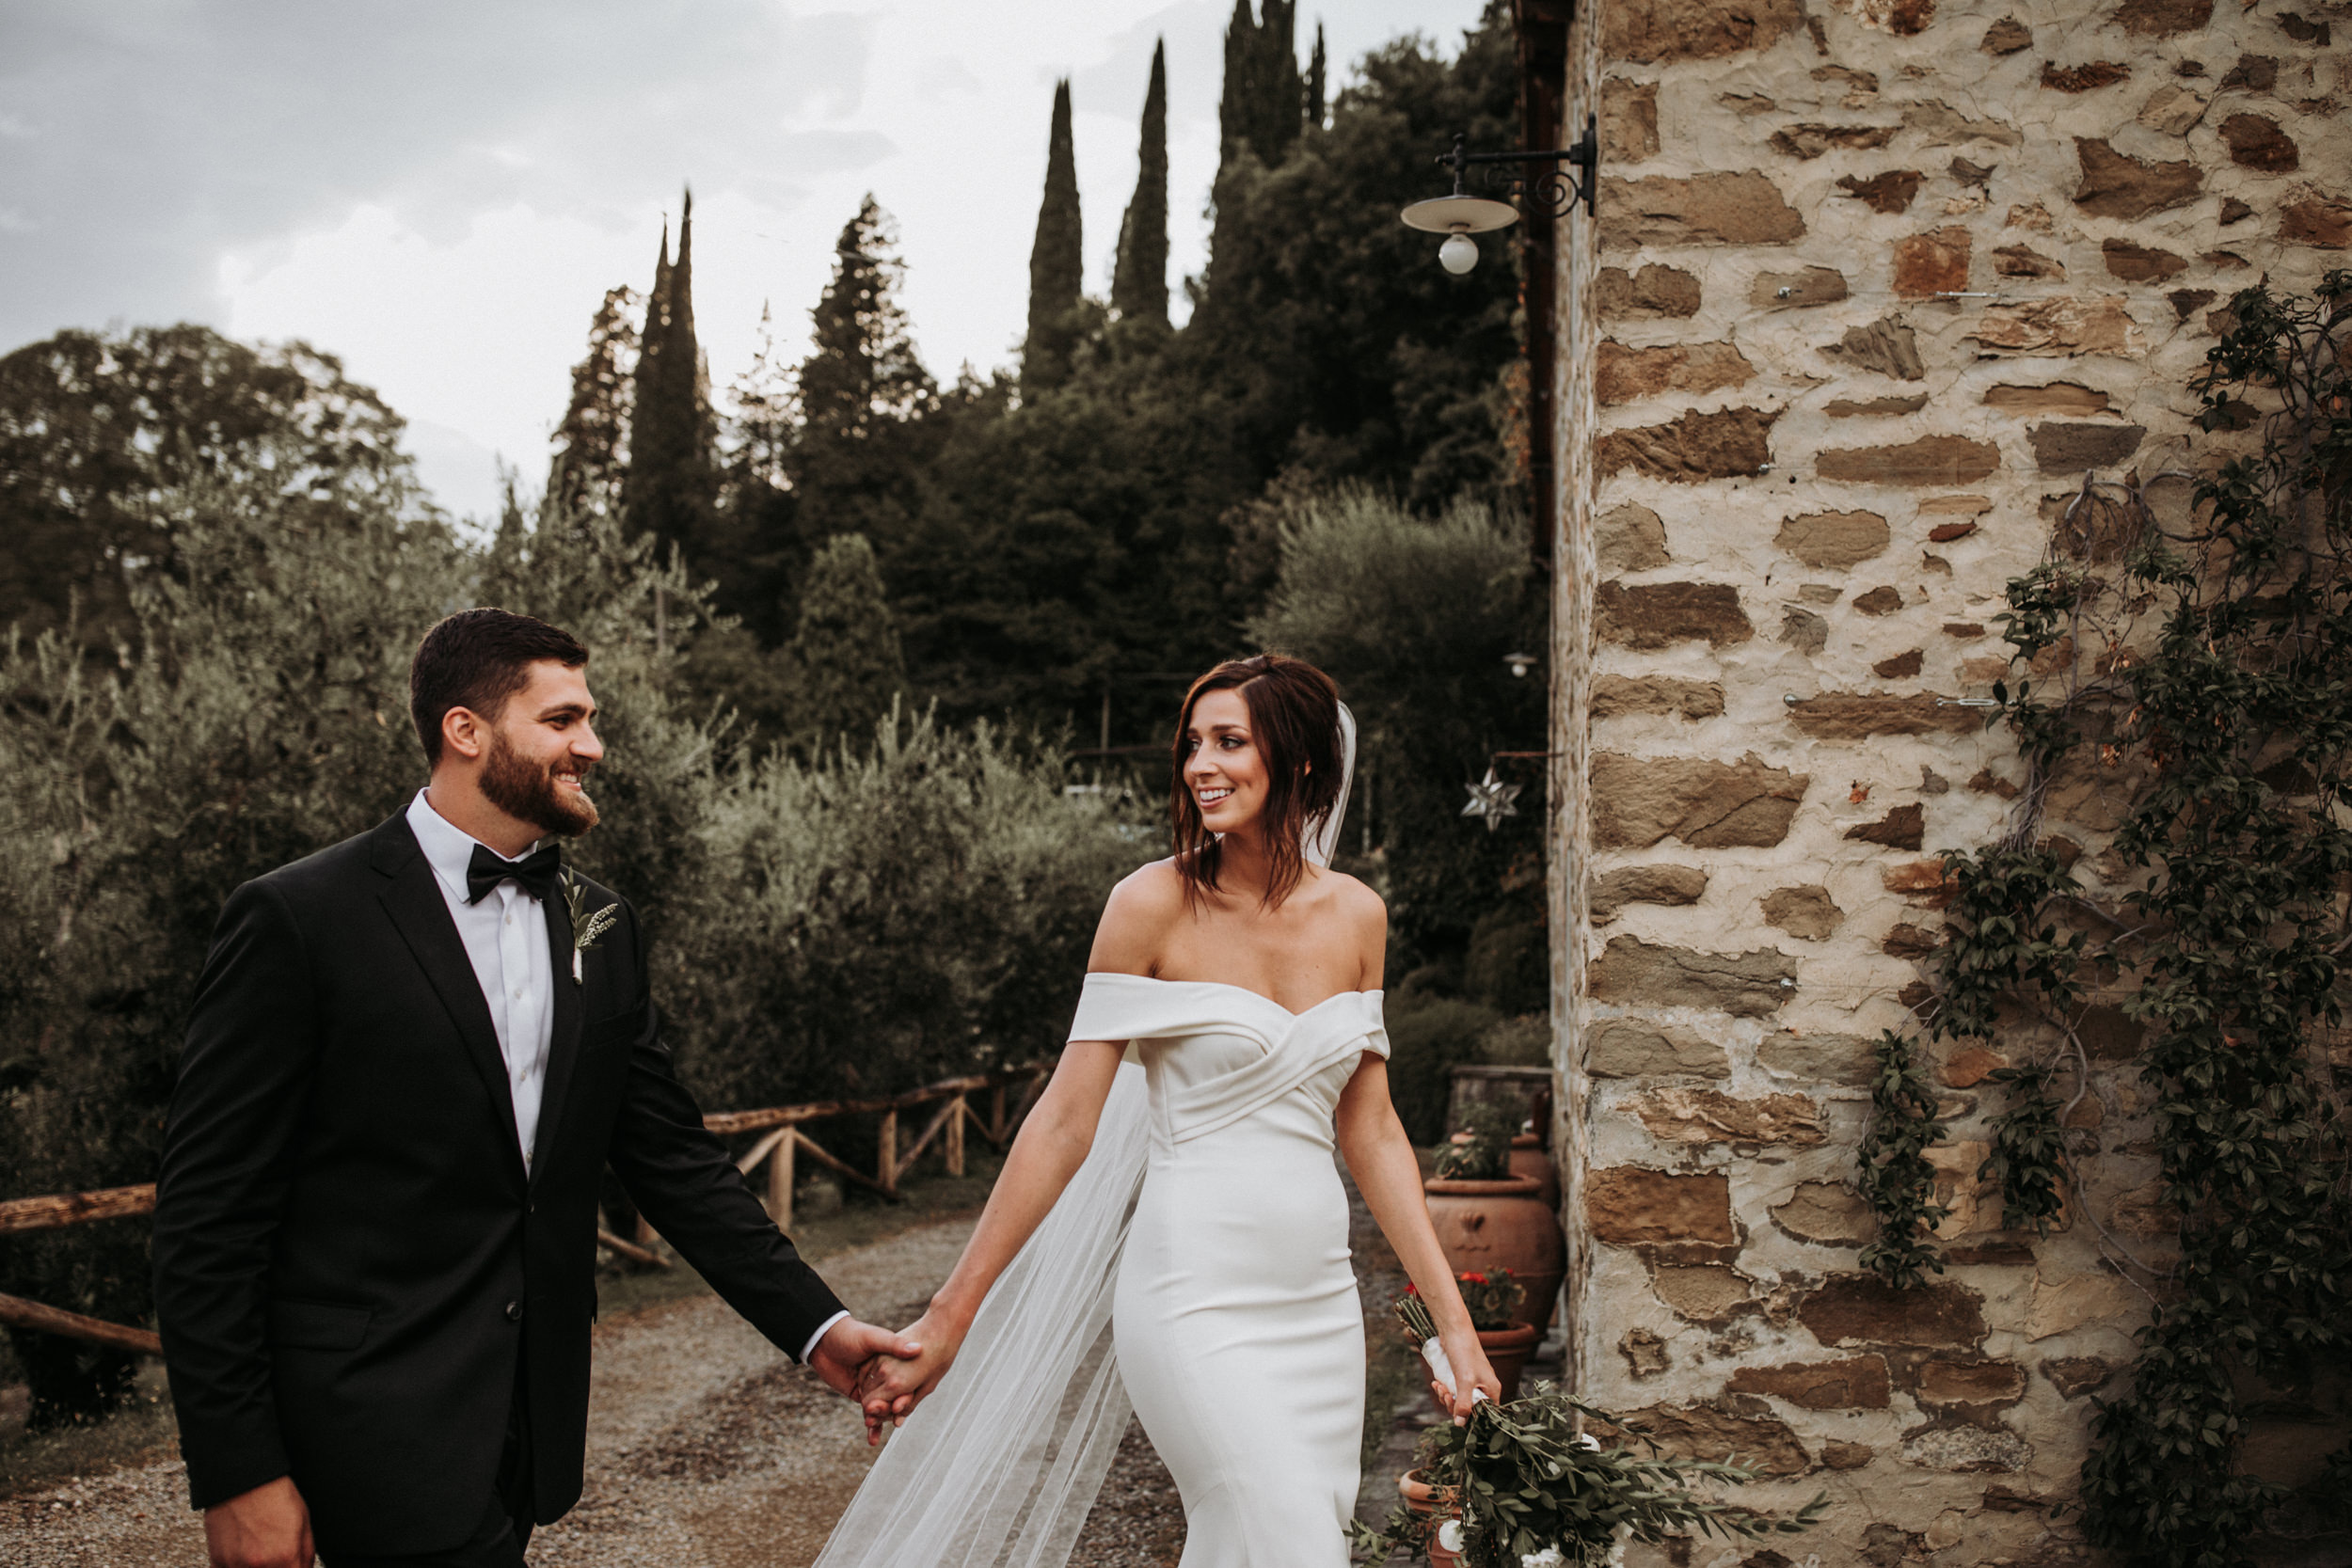 dm_photography_KW_Tuscanyweddingday_317